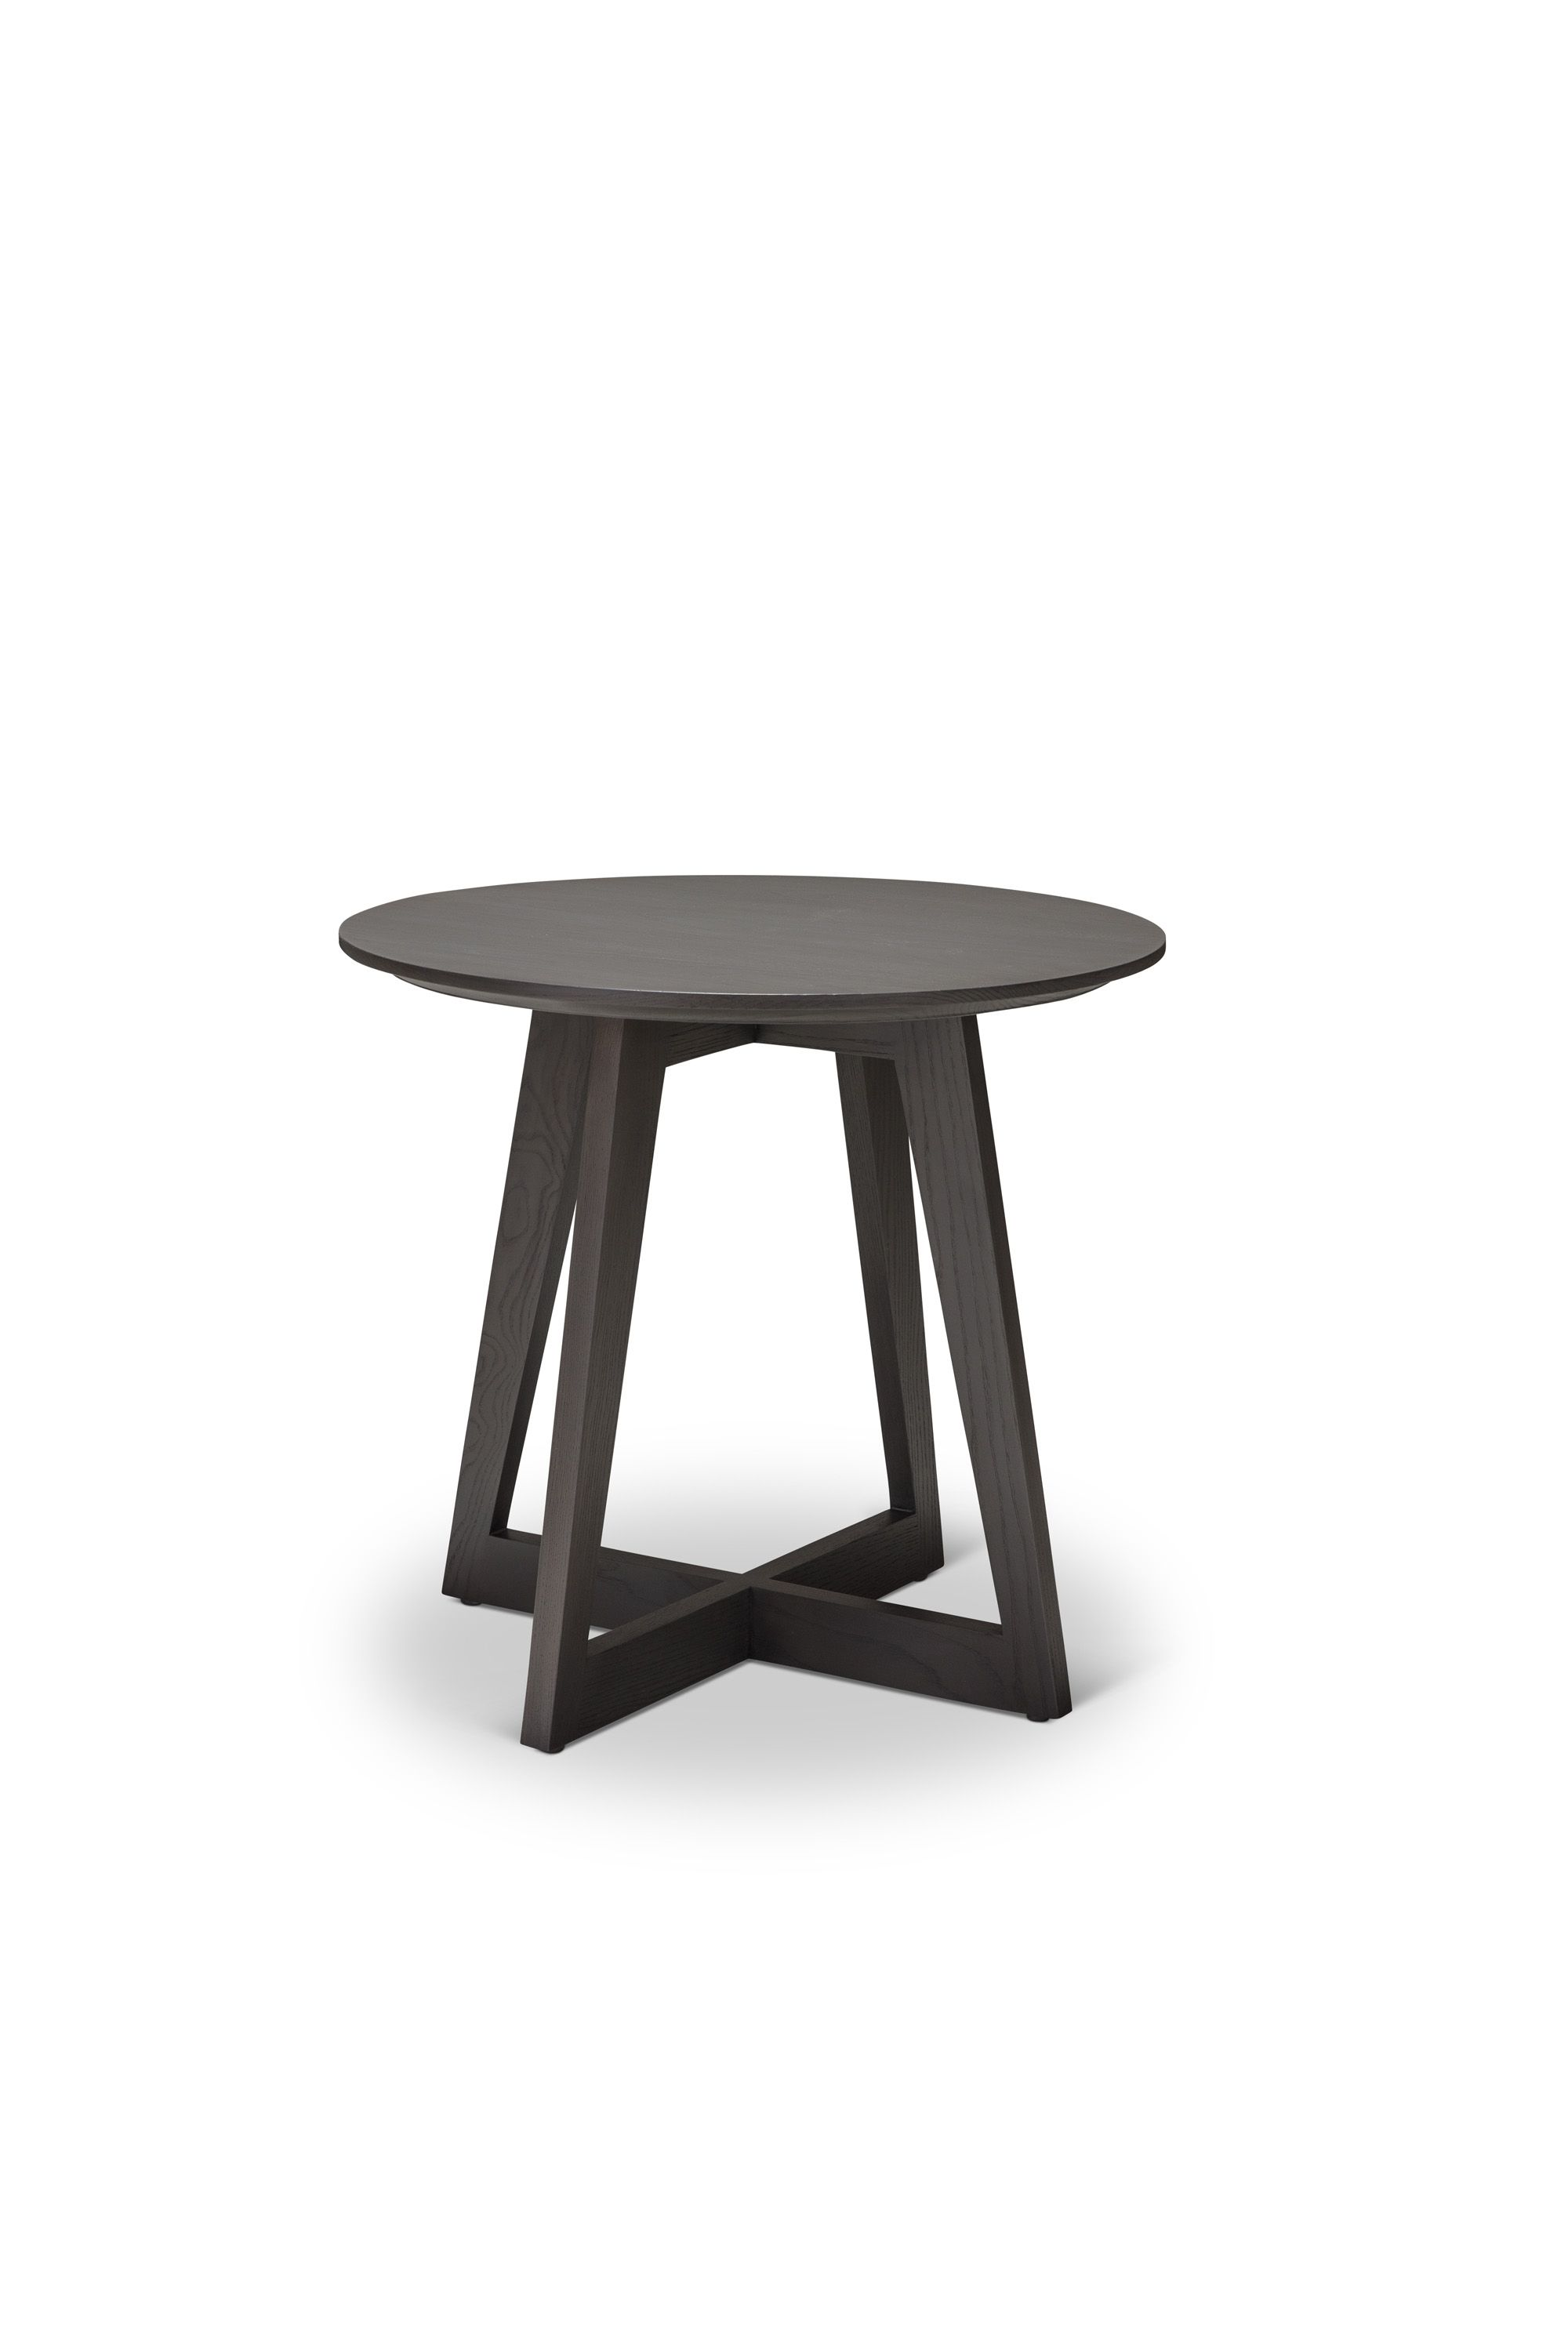 Mason Side Table By Verellen Side Table Table Home Decor